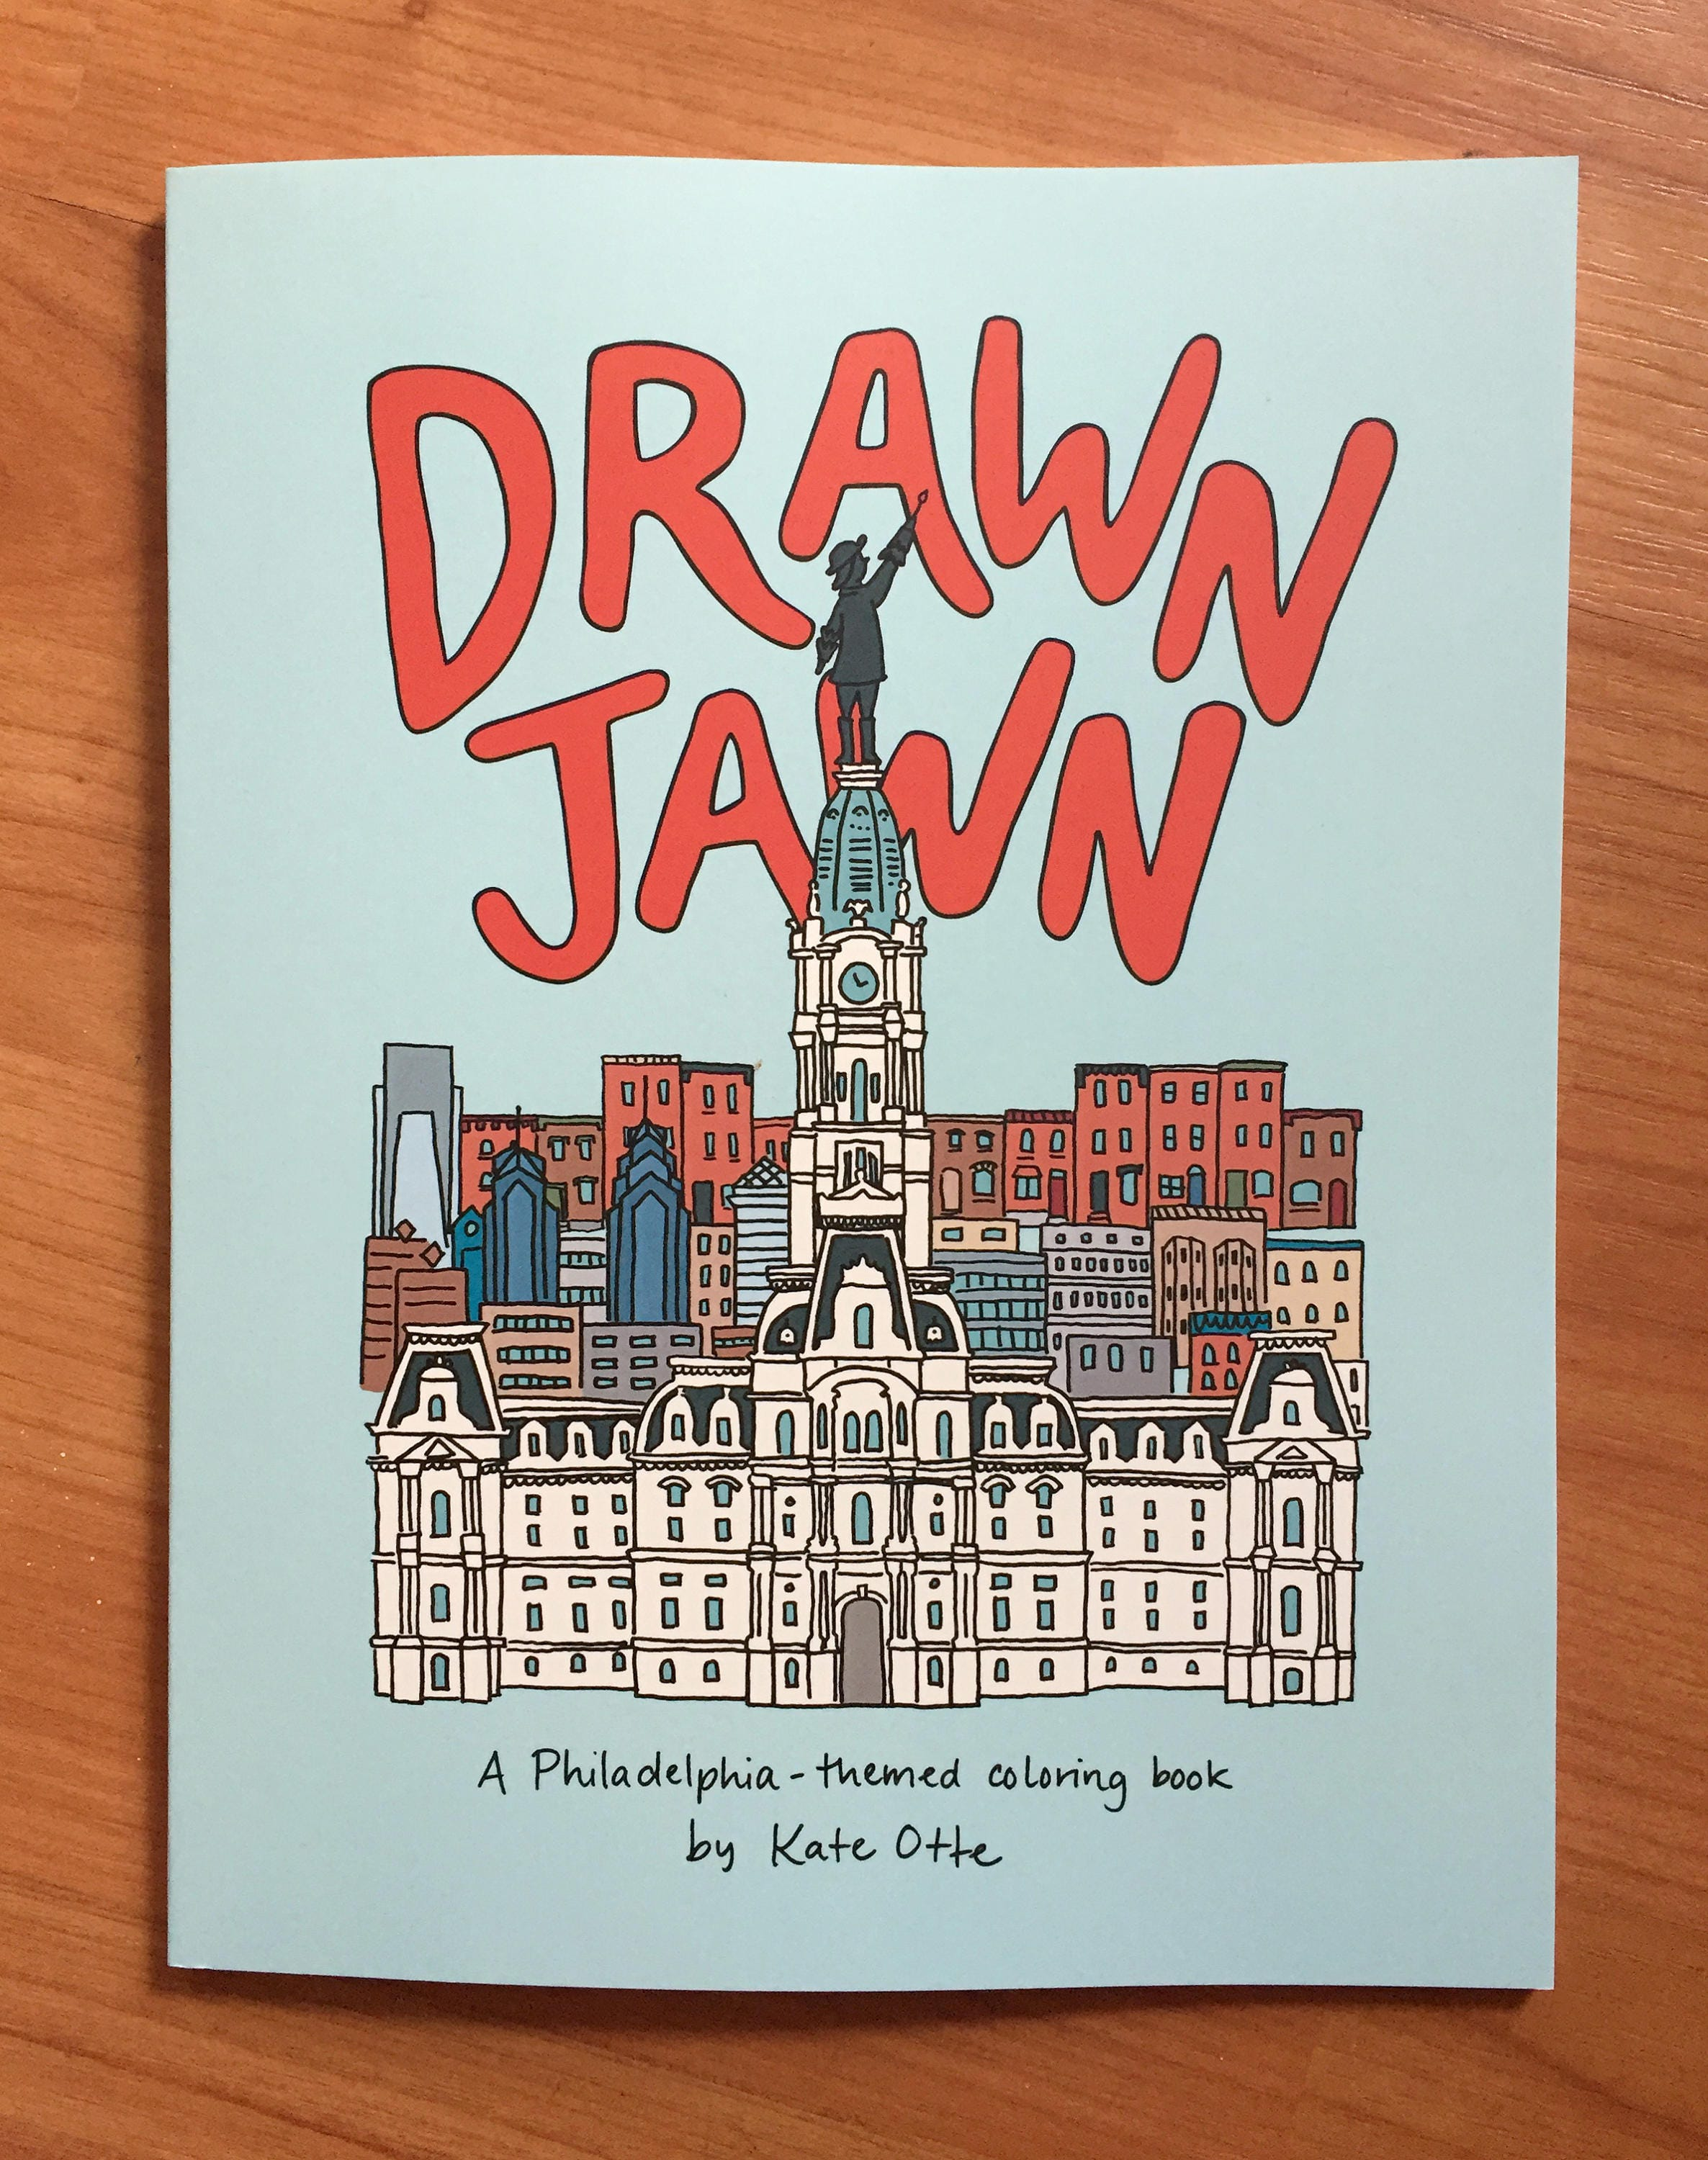 Drawn Jawn: A Philadelphia-themed coloring book | Etsy